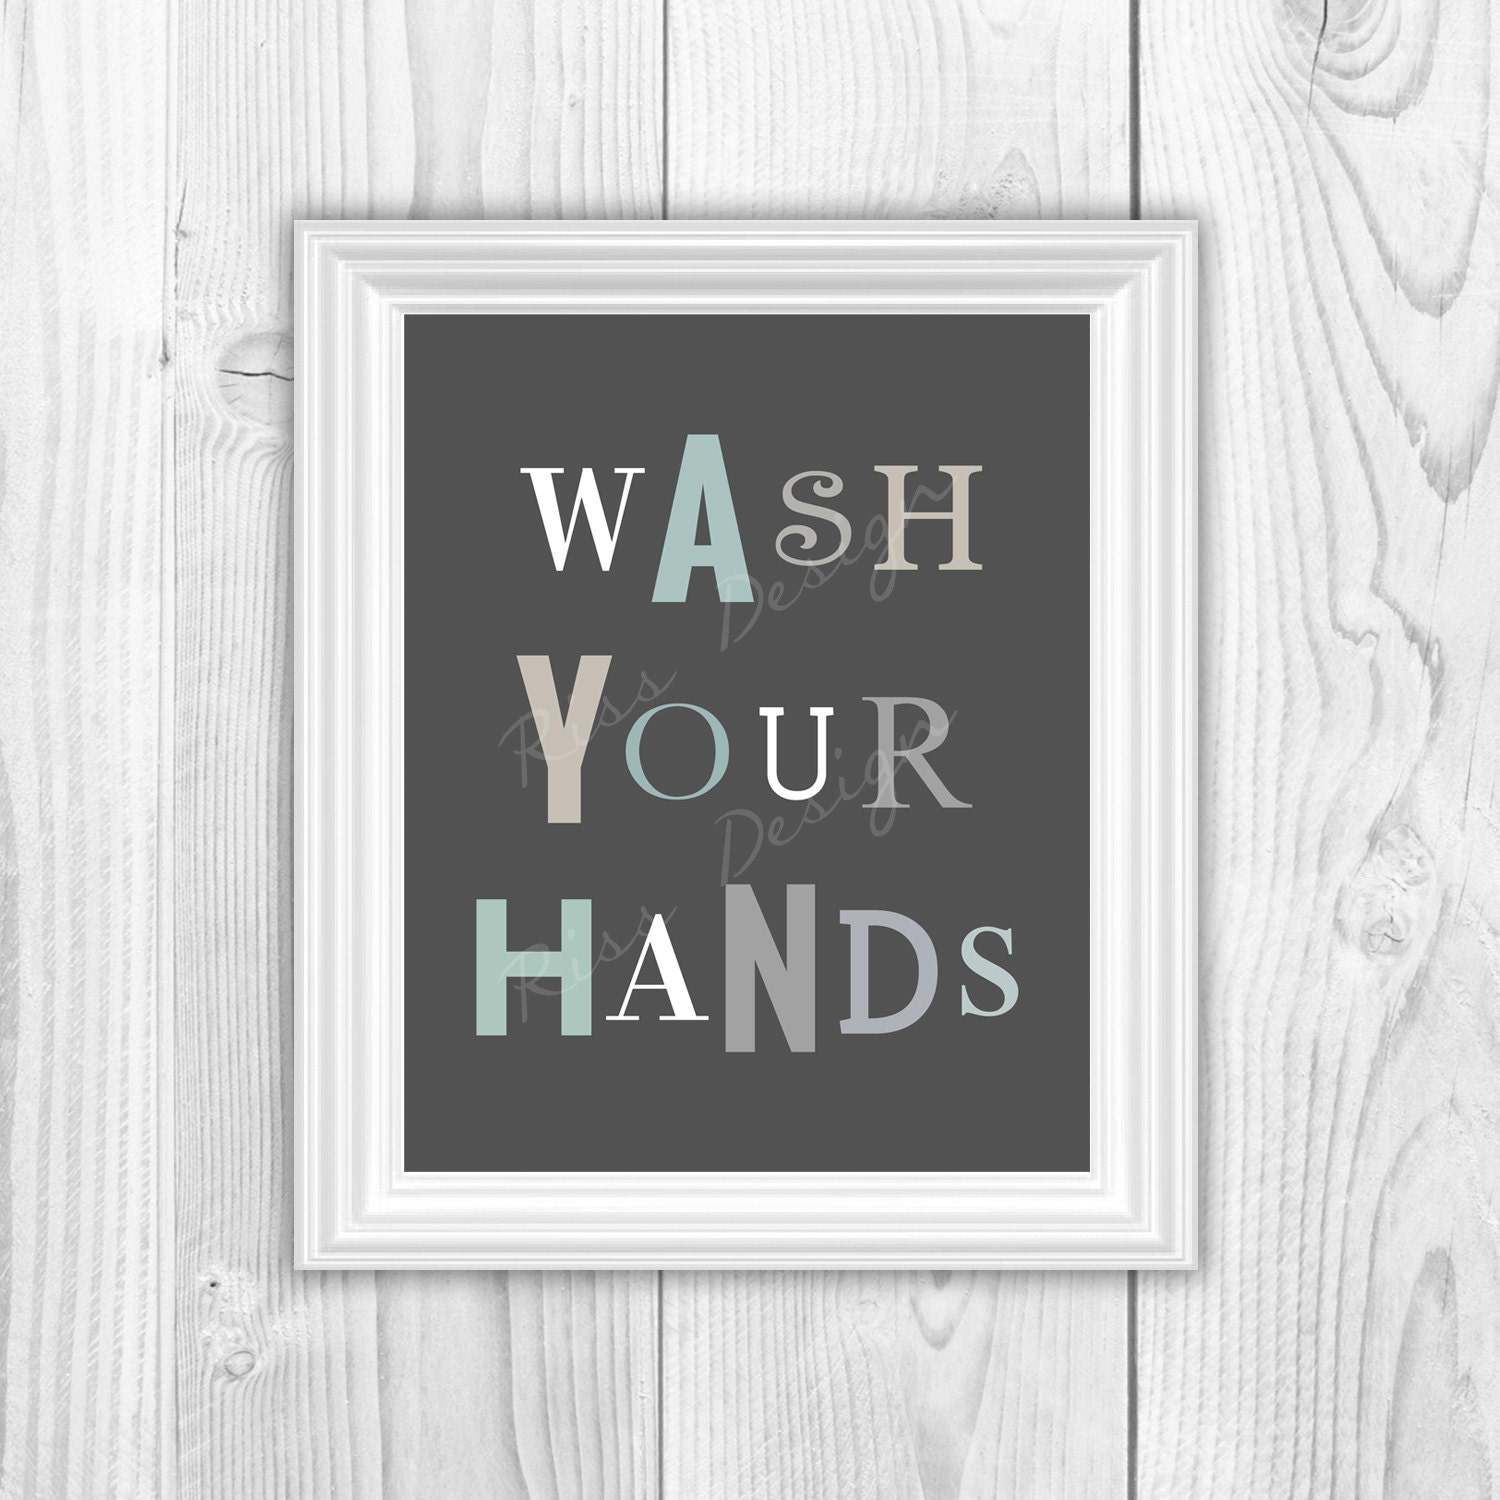 Bathroom wall art printables - Wash Your Hands And Brush Your Teeth Printables Bathroom Wall Art Typography Bathroom Art Printable You Pick Colors